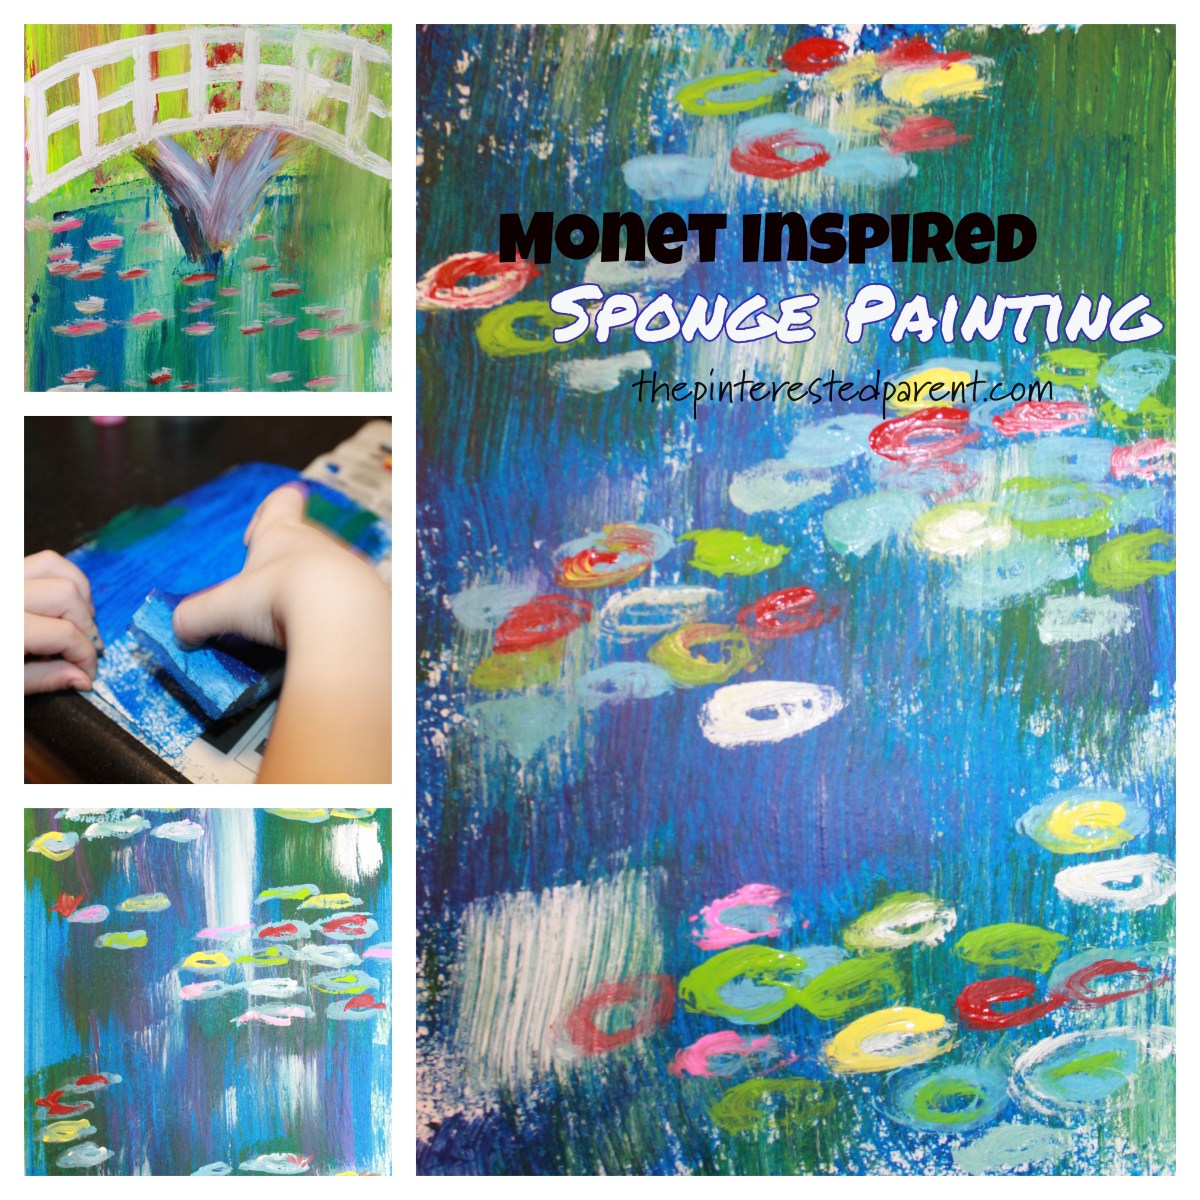 Monet Inspired Sponge Painting